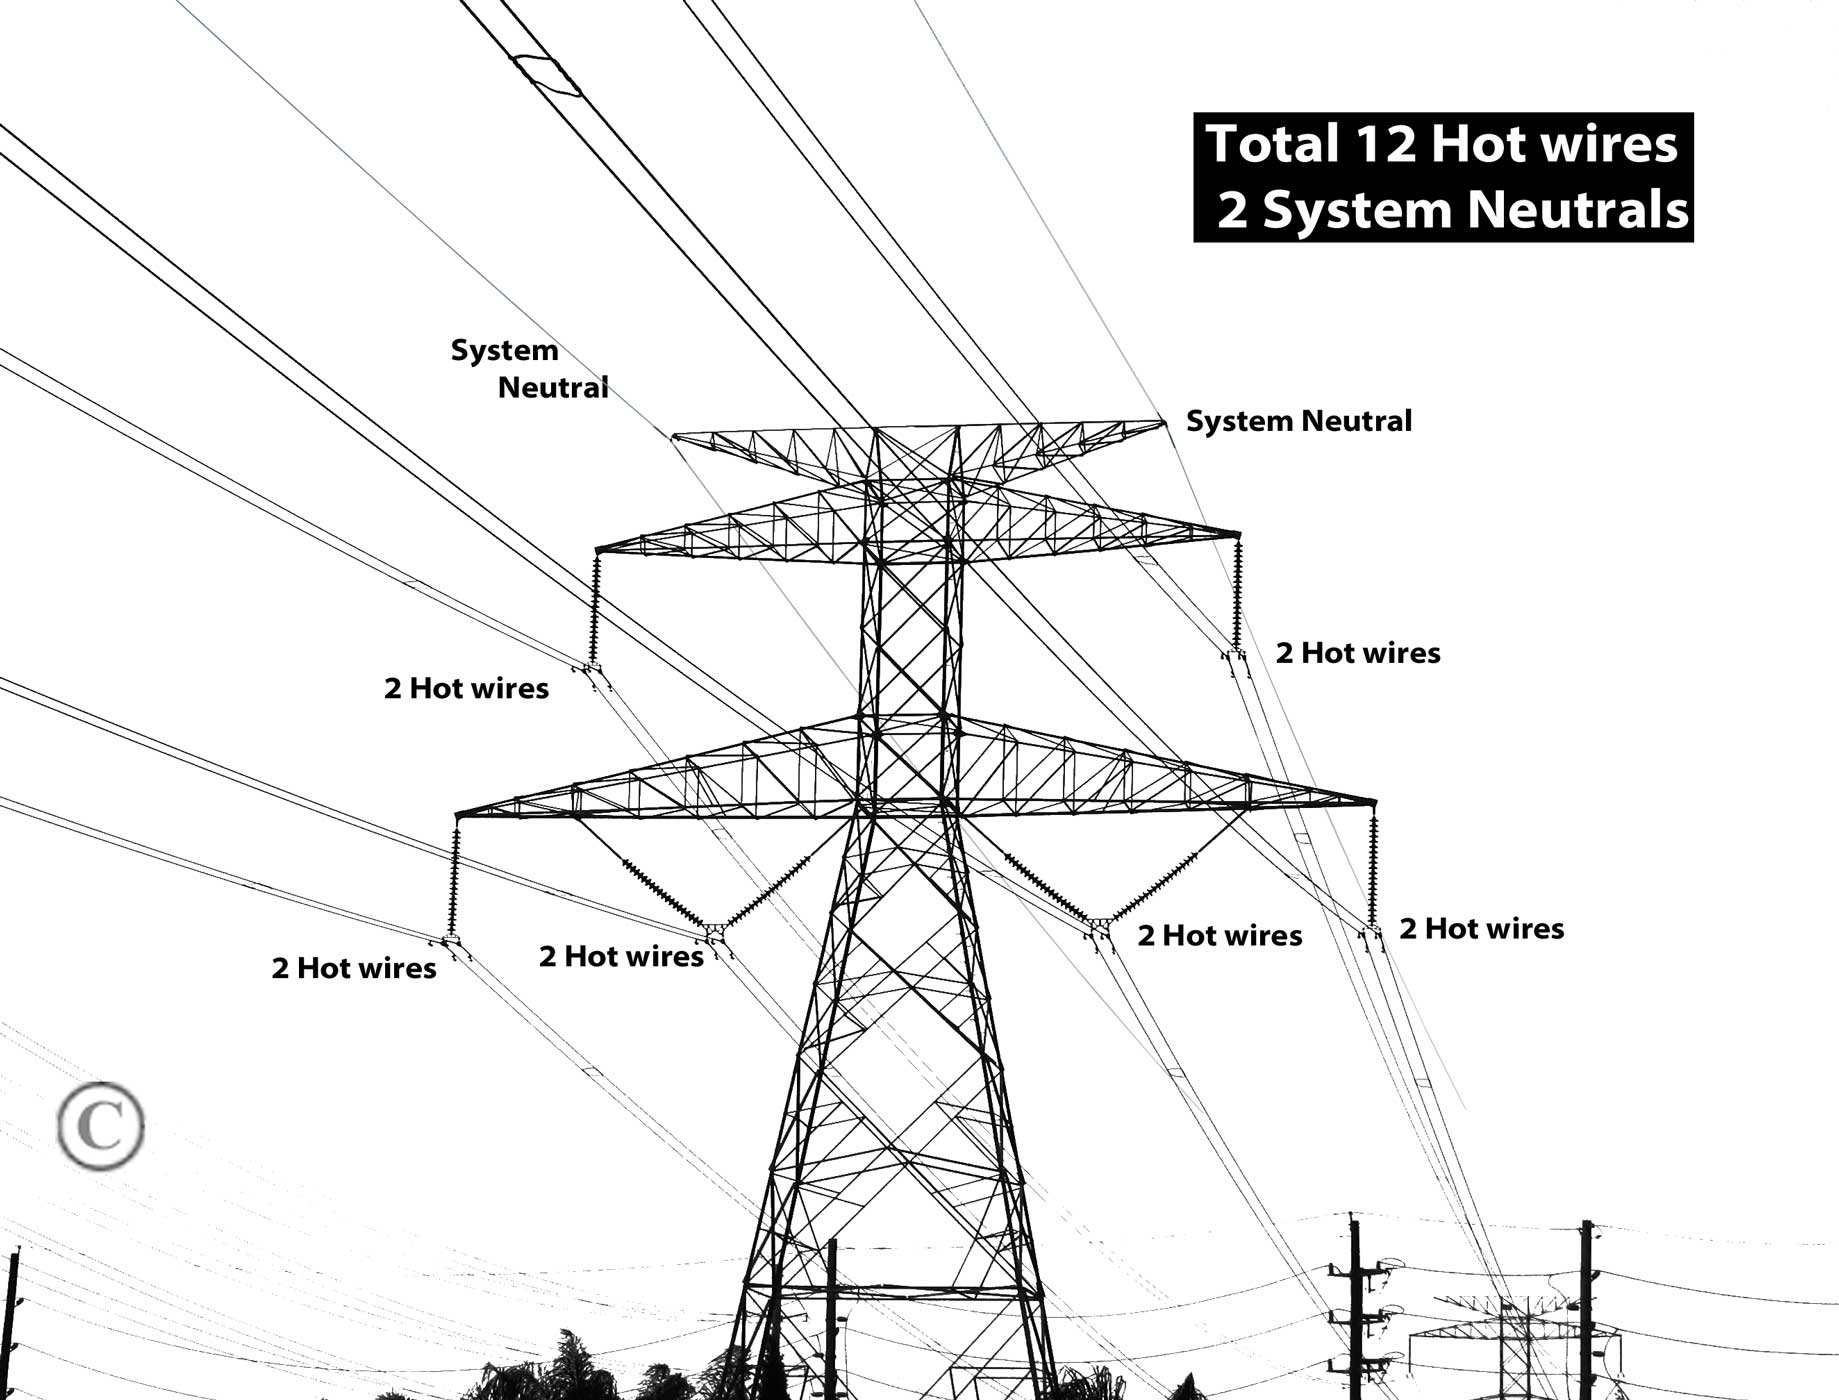 Power Line Drawing At Free For Personal Use Overhead Wiring Diagram 1839x1400 What Is Phase Electric Larger Image2 Components